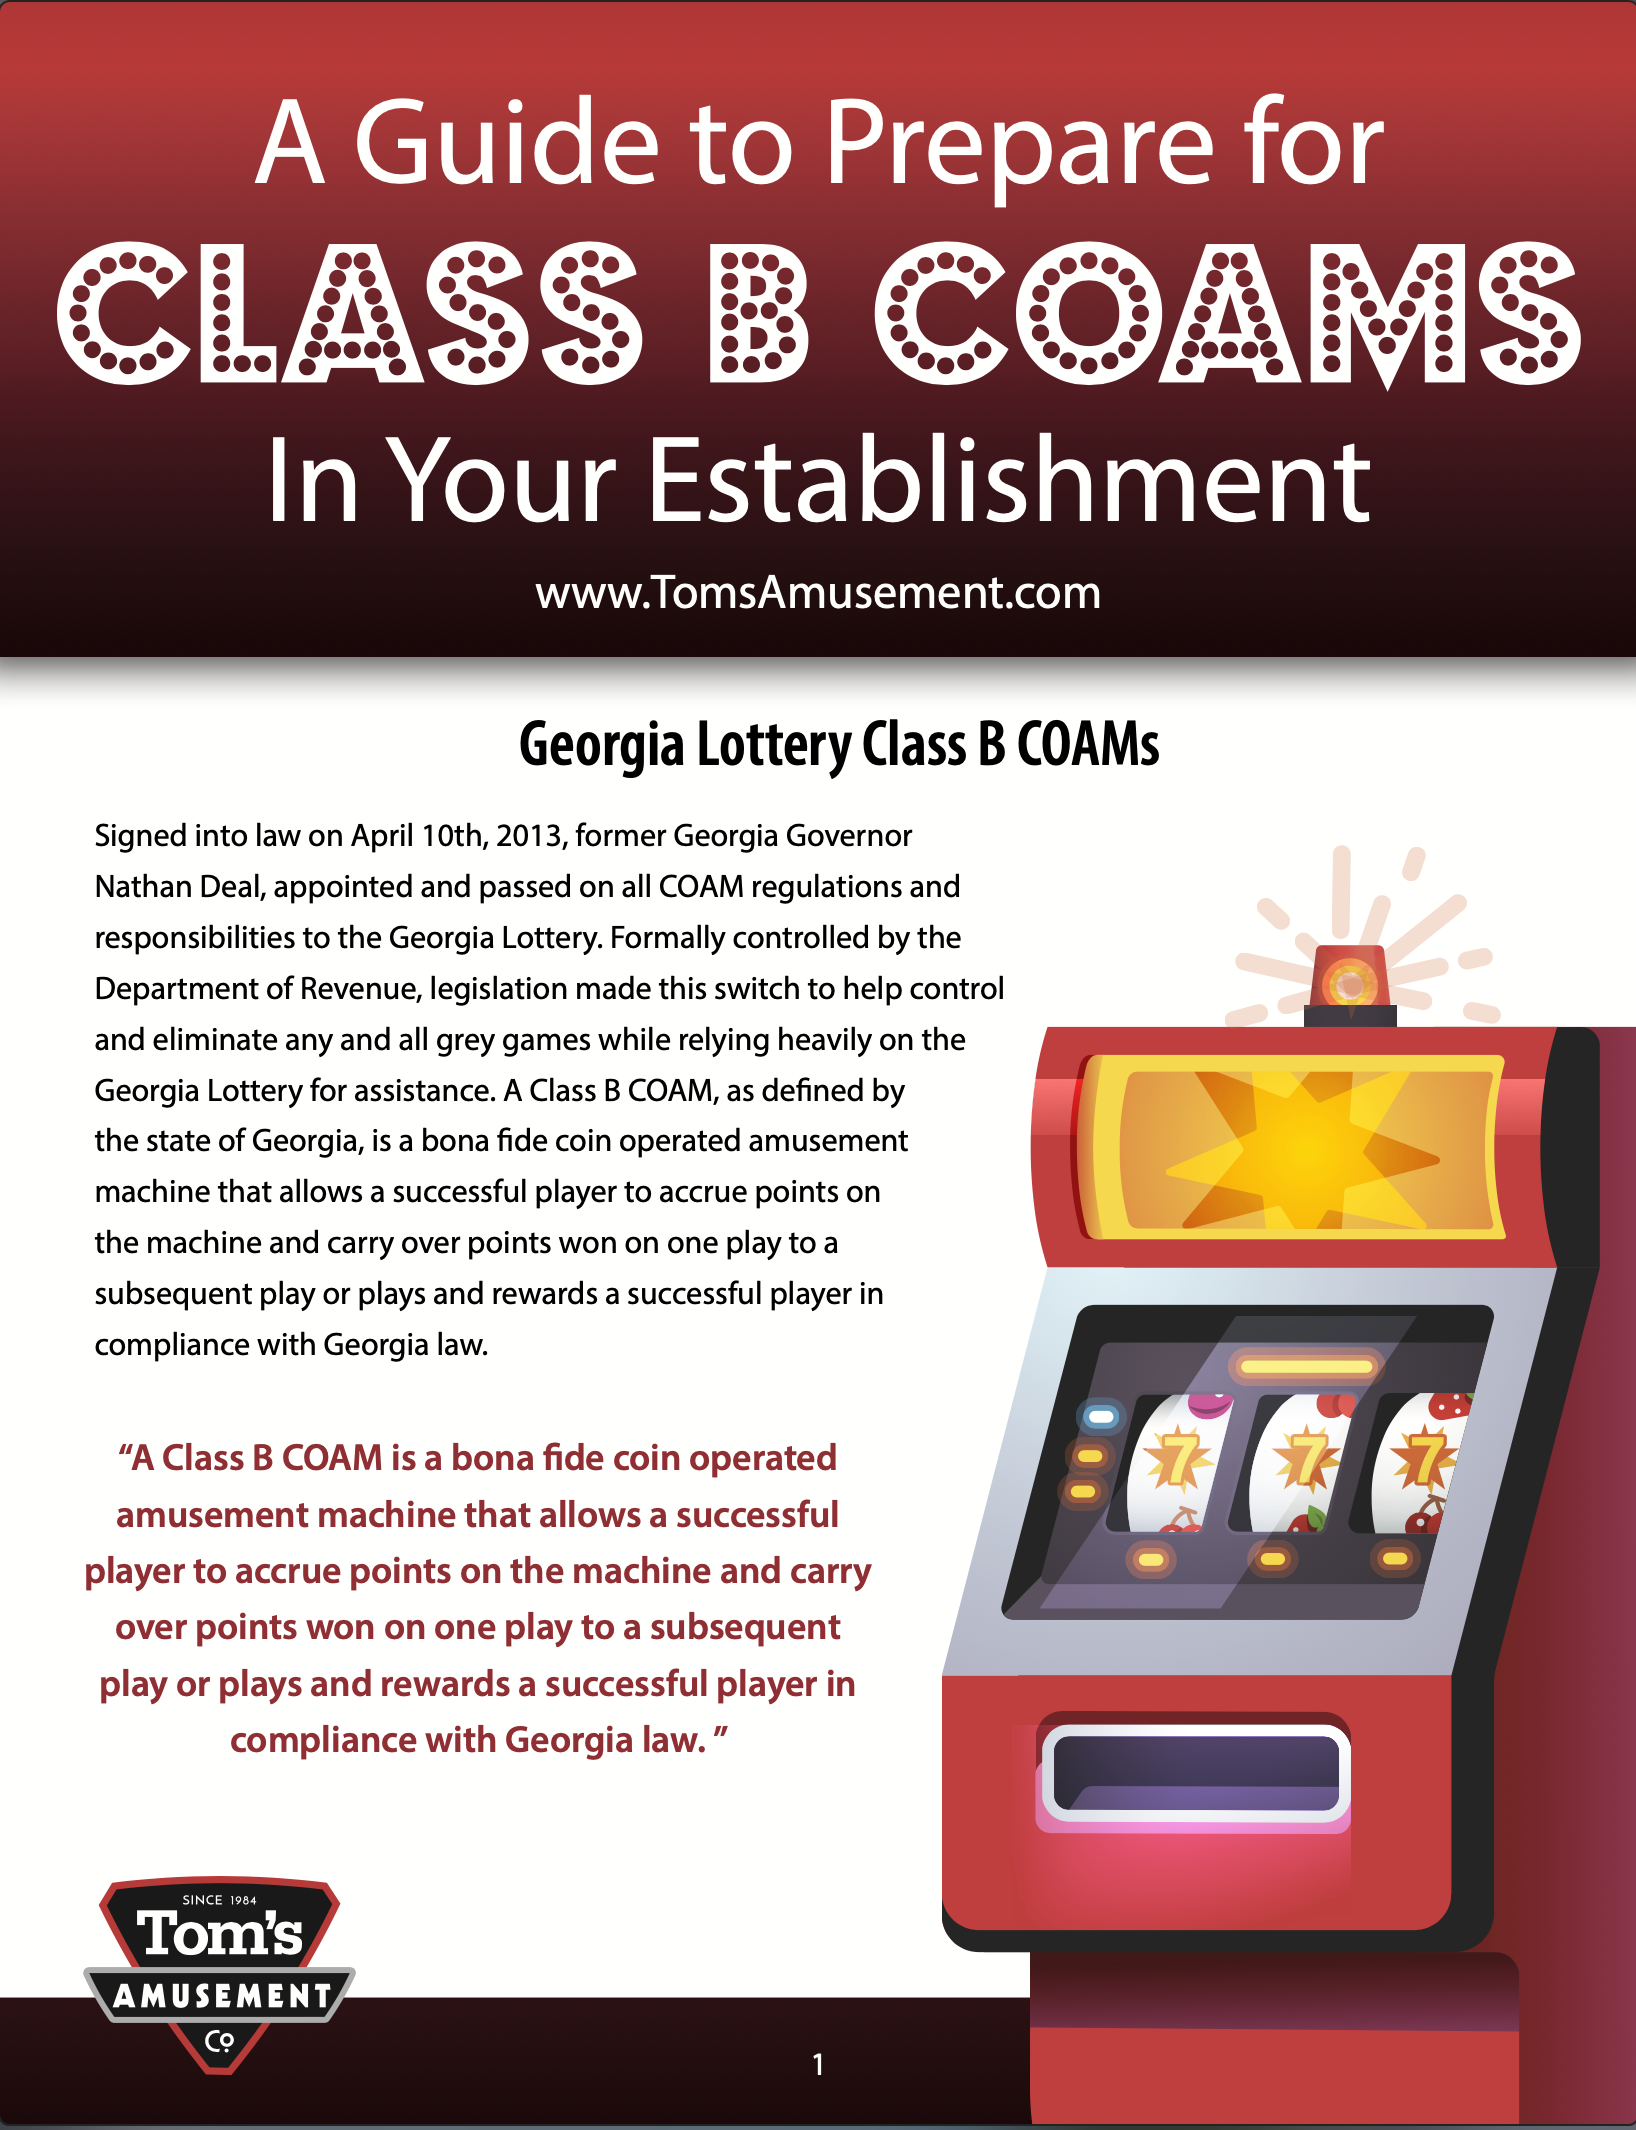 A Guide to Preparing for Class B COAMs in Your Establishment_GA Content Offer_2021_HighRes